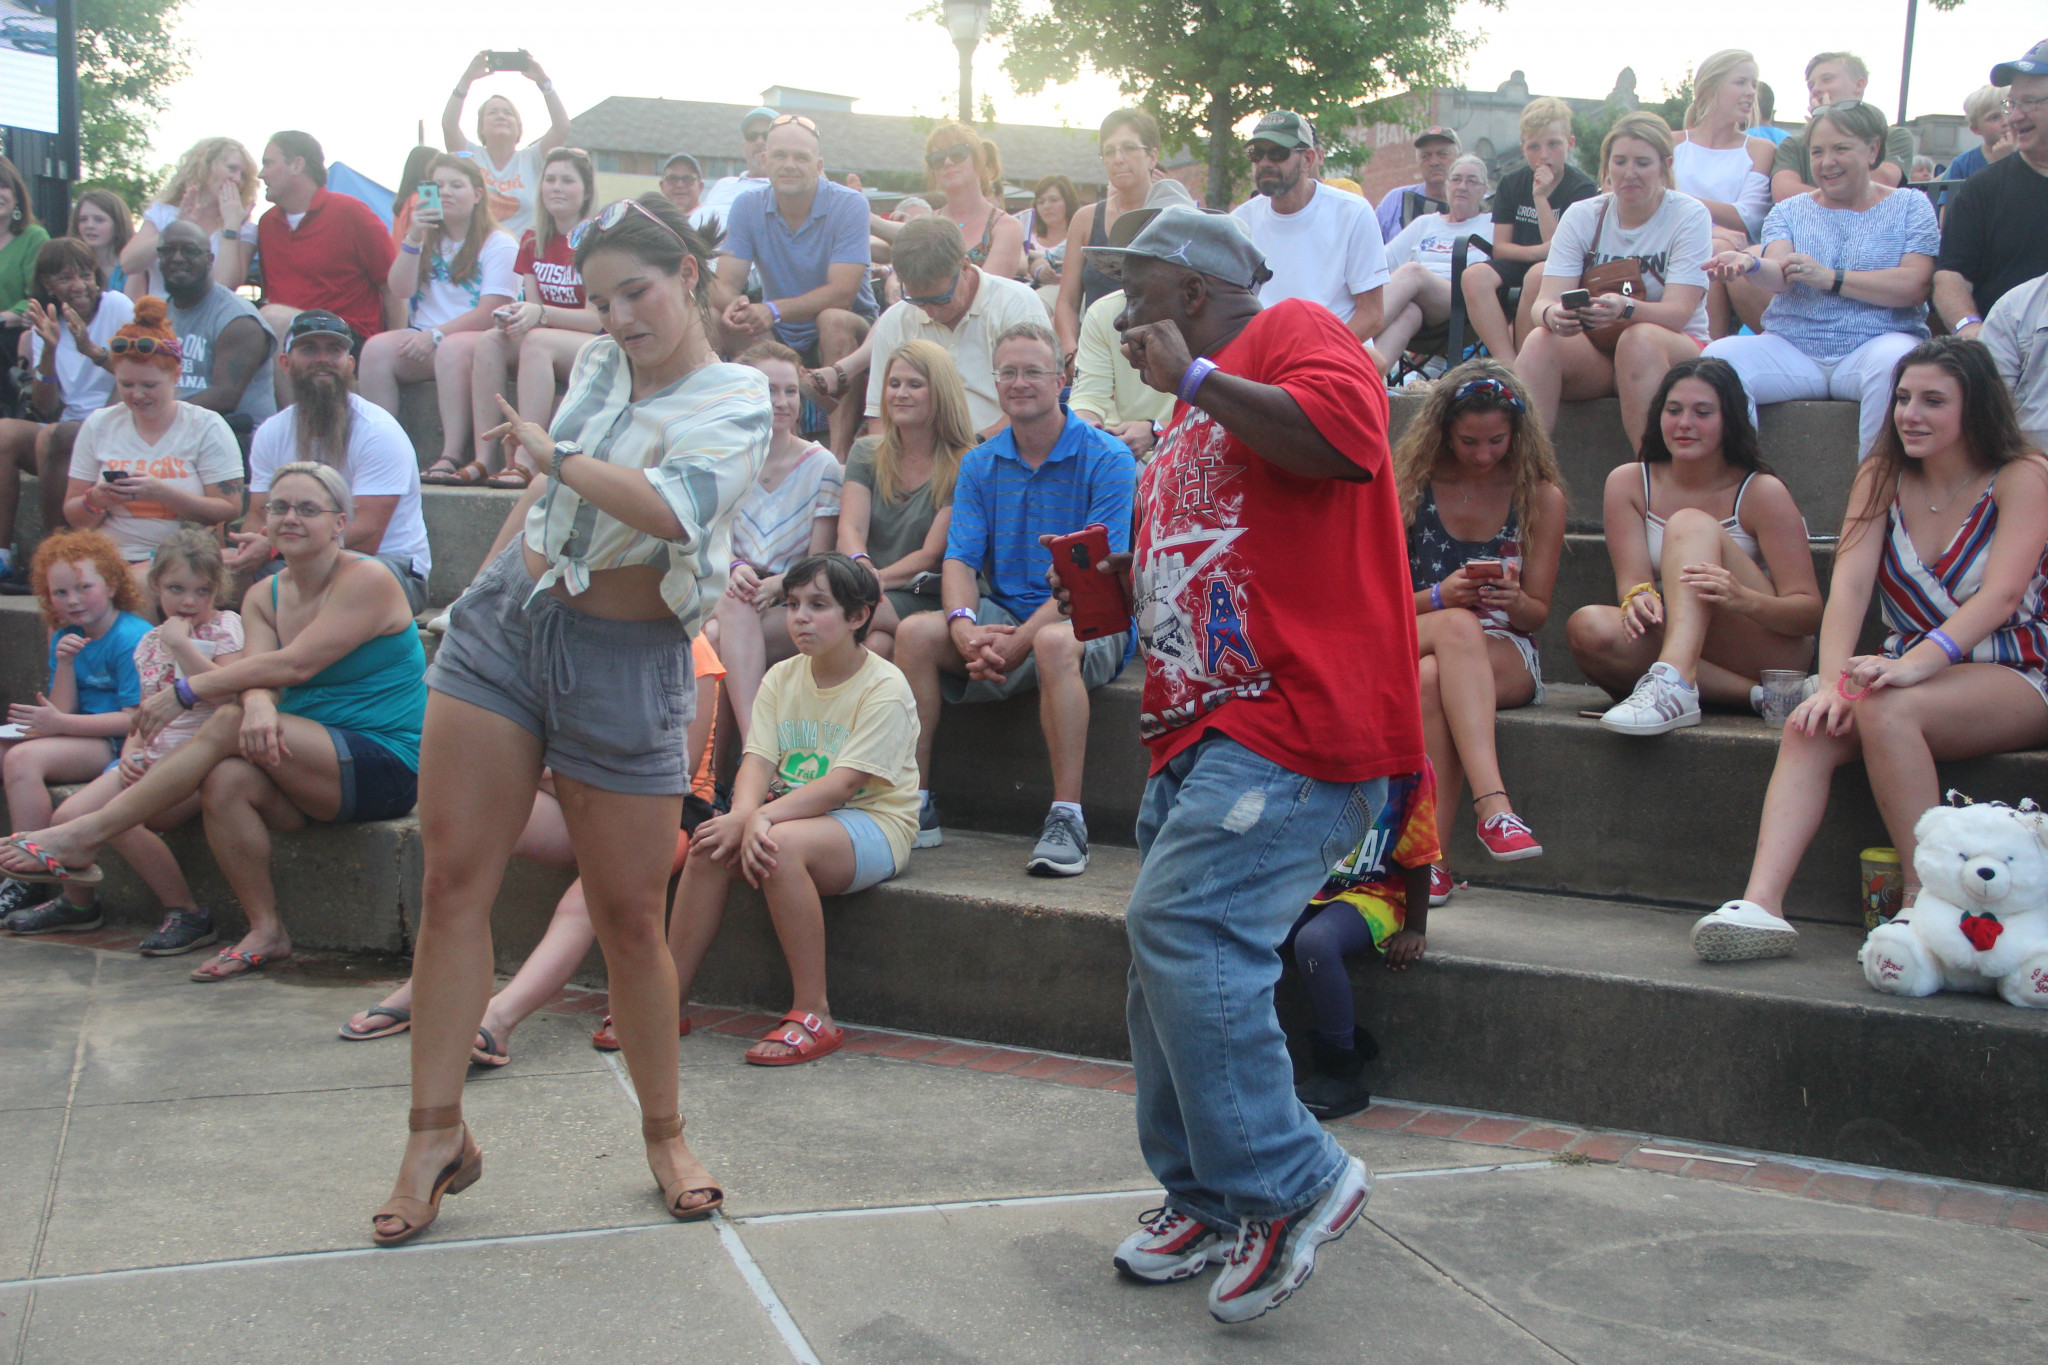 Concertgoers dancing during J.A.M.'s performance